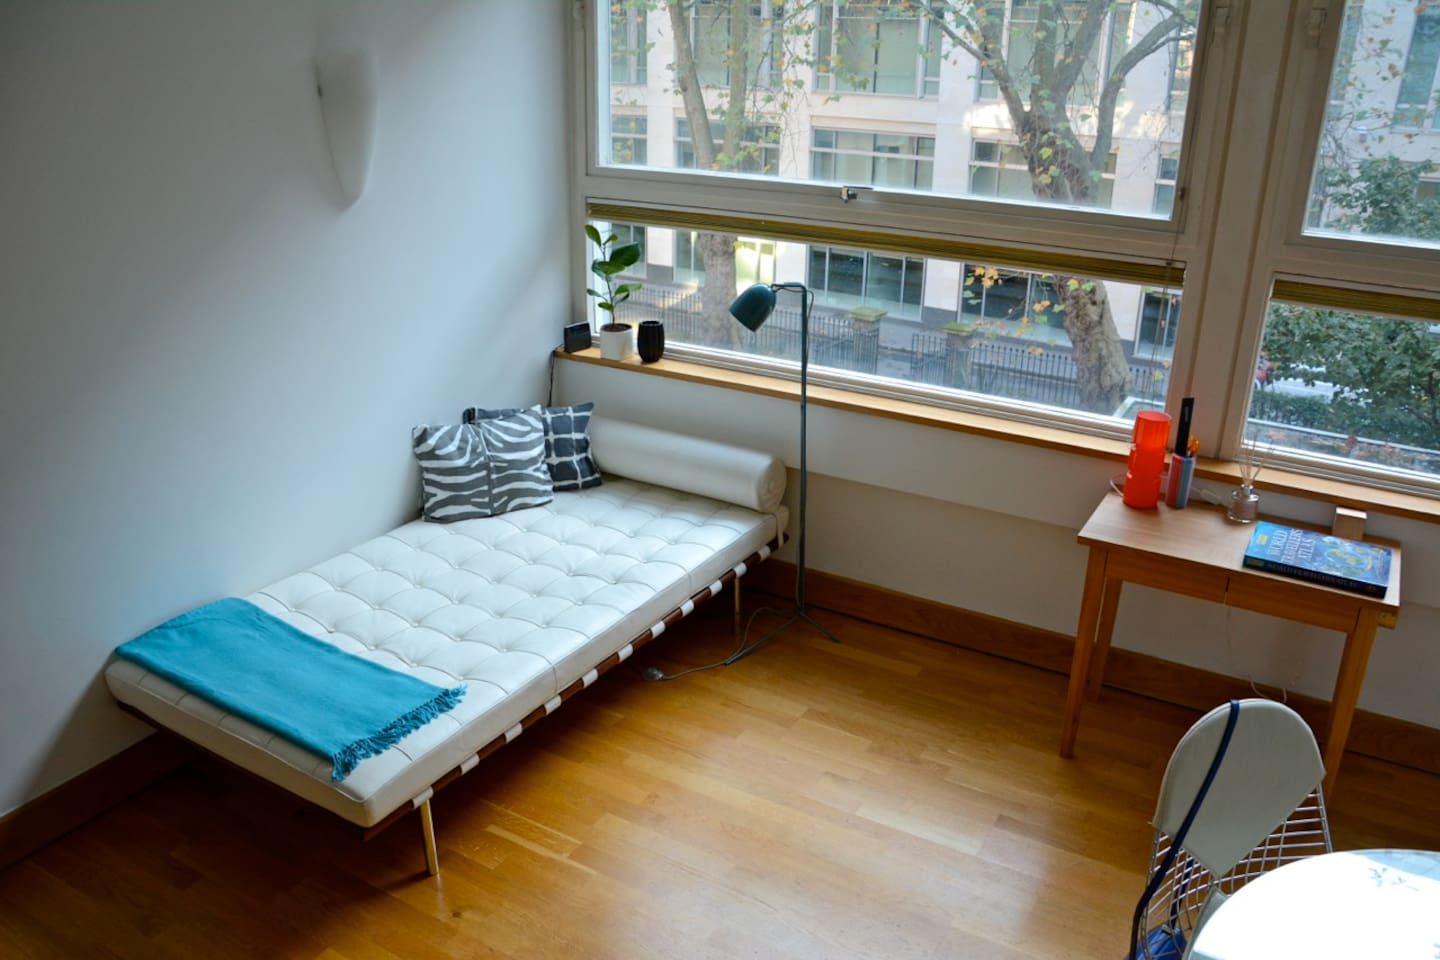 The flat is spacious with a living/dining area adjoining kitchen, sleeping area and shower room. Sleeps three in double bed with one on the sofa bed.